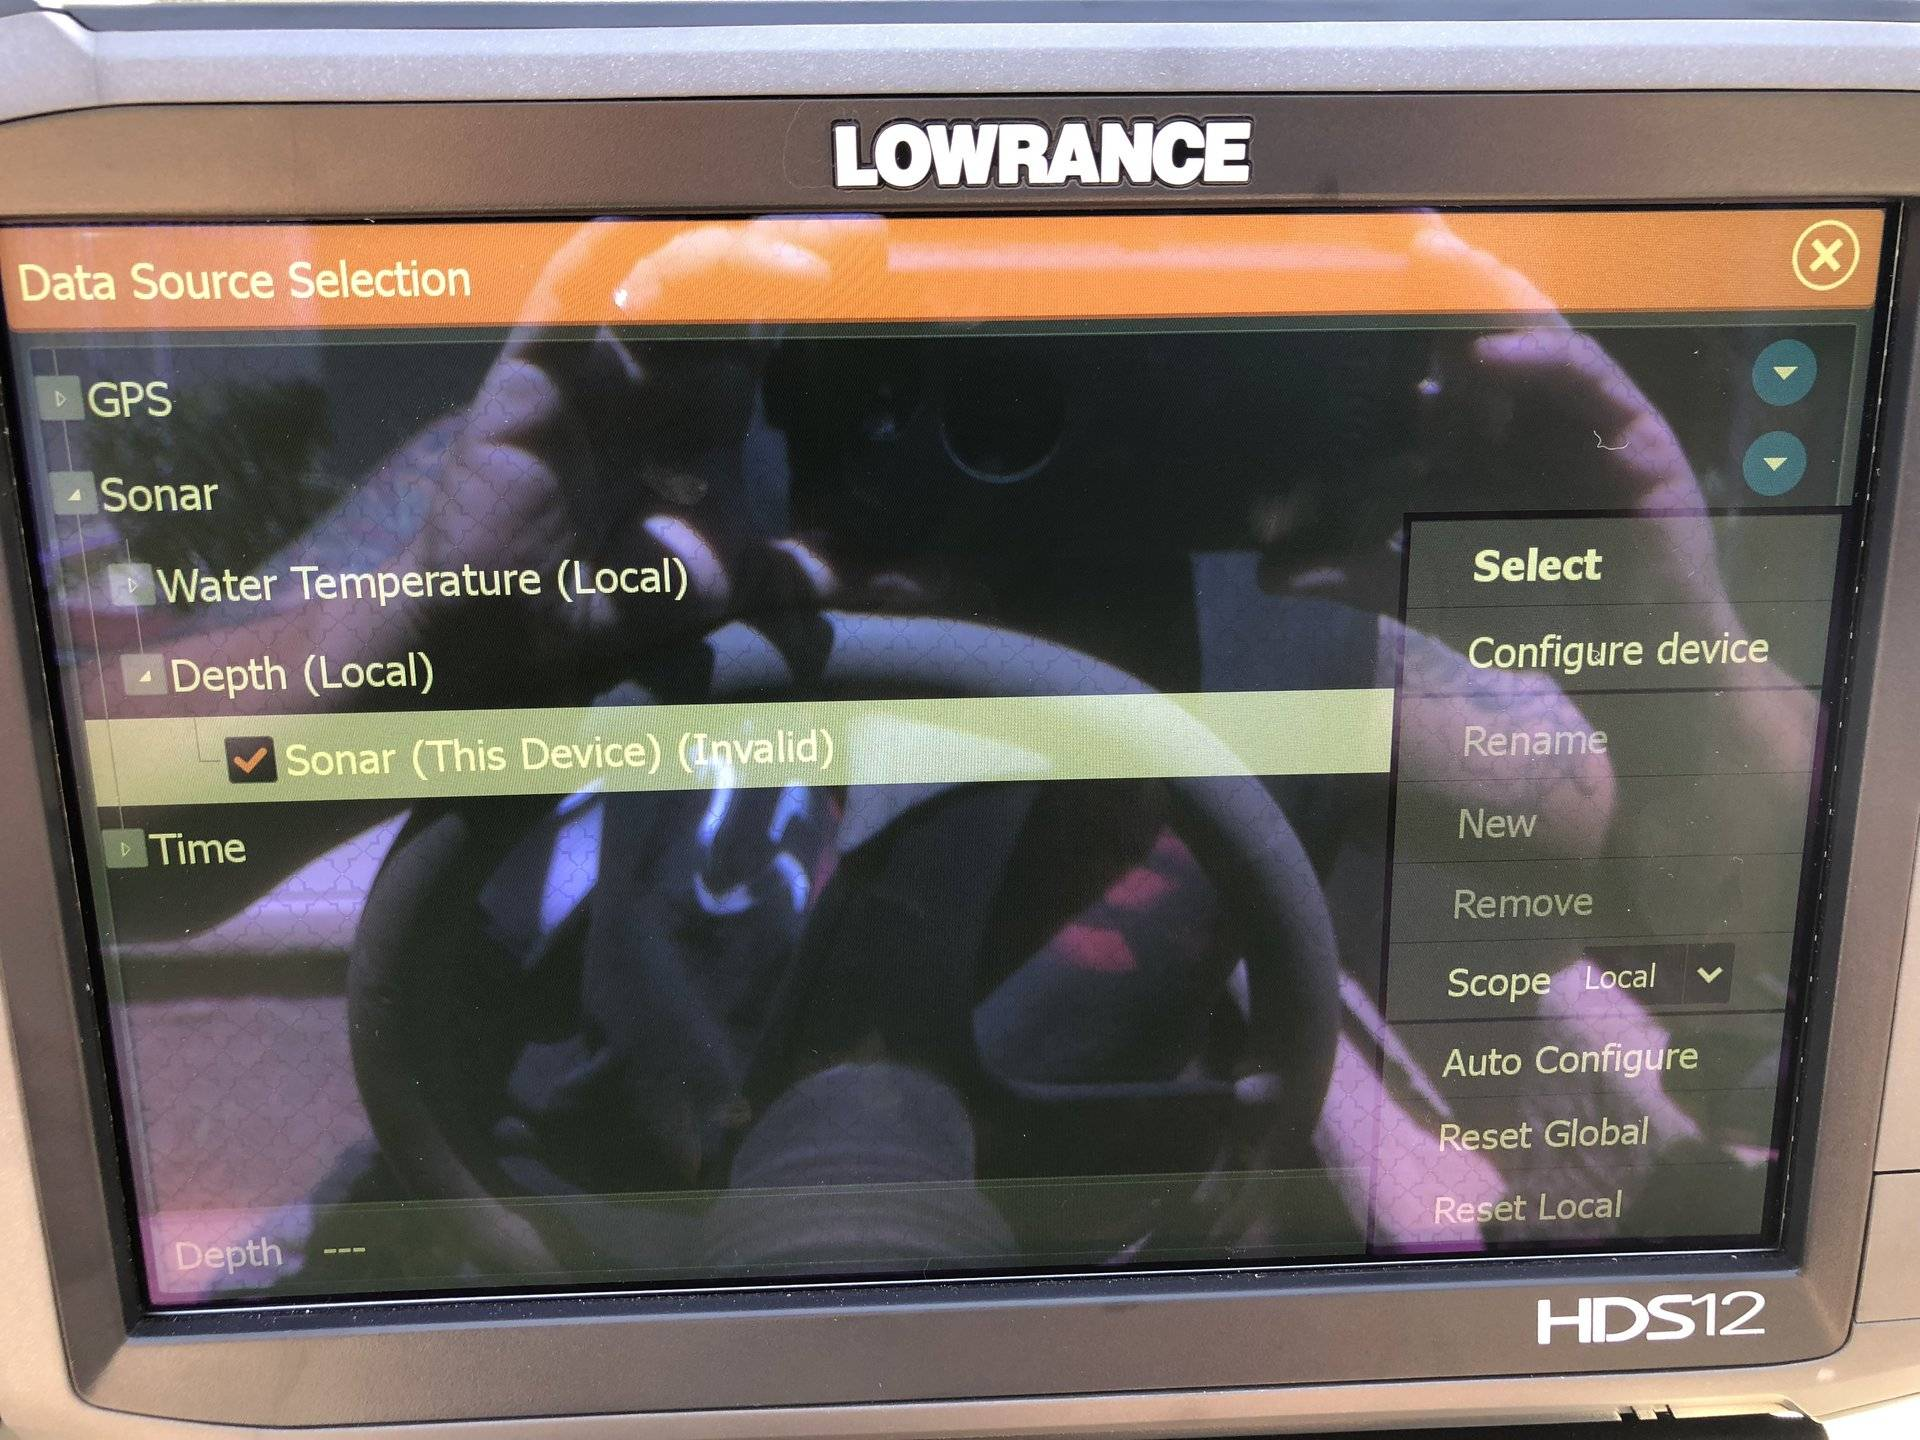 Lowrance HDS12 GEN3 depth is not working | Bloodydecks